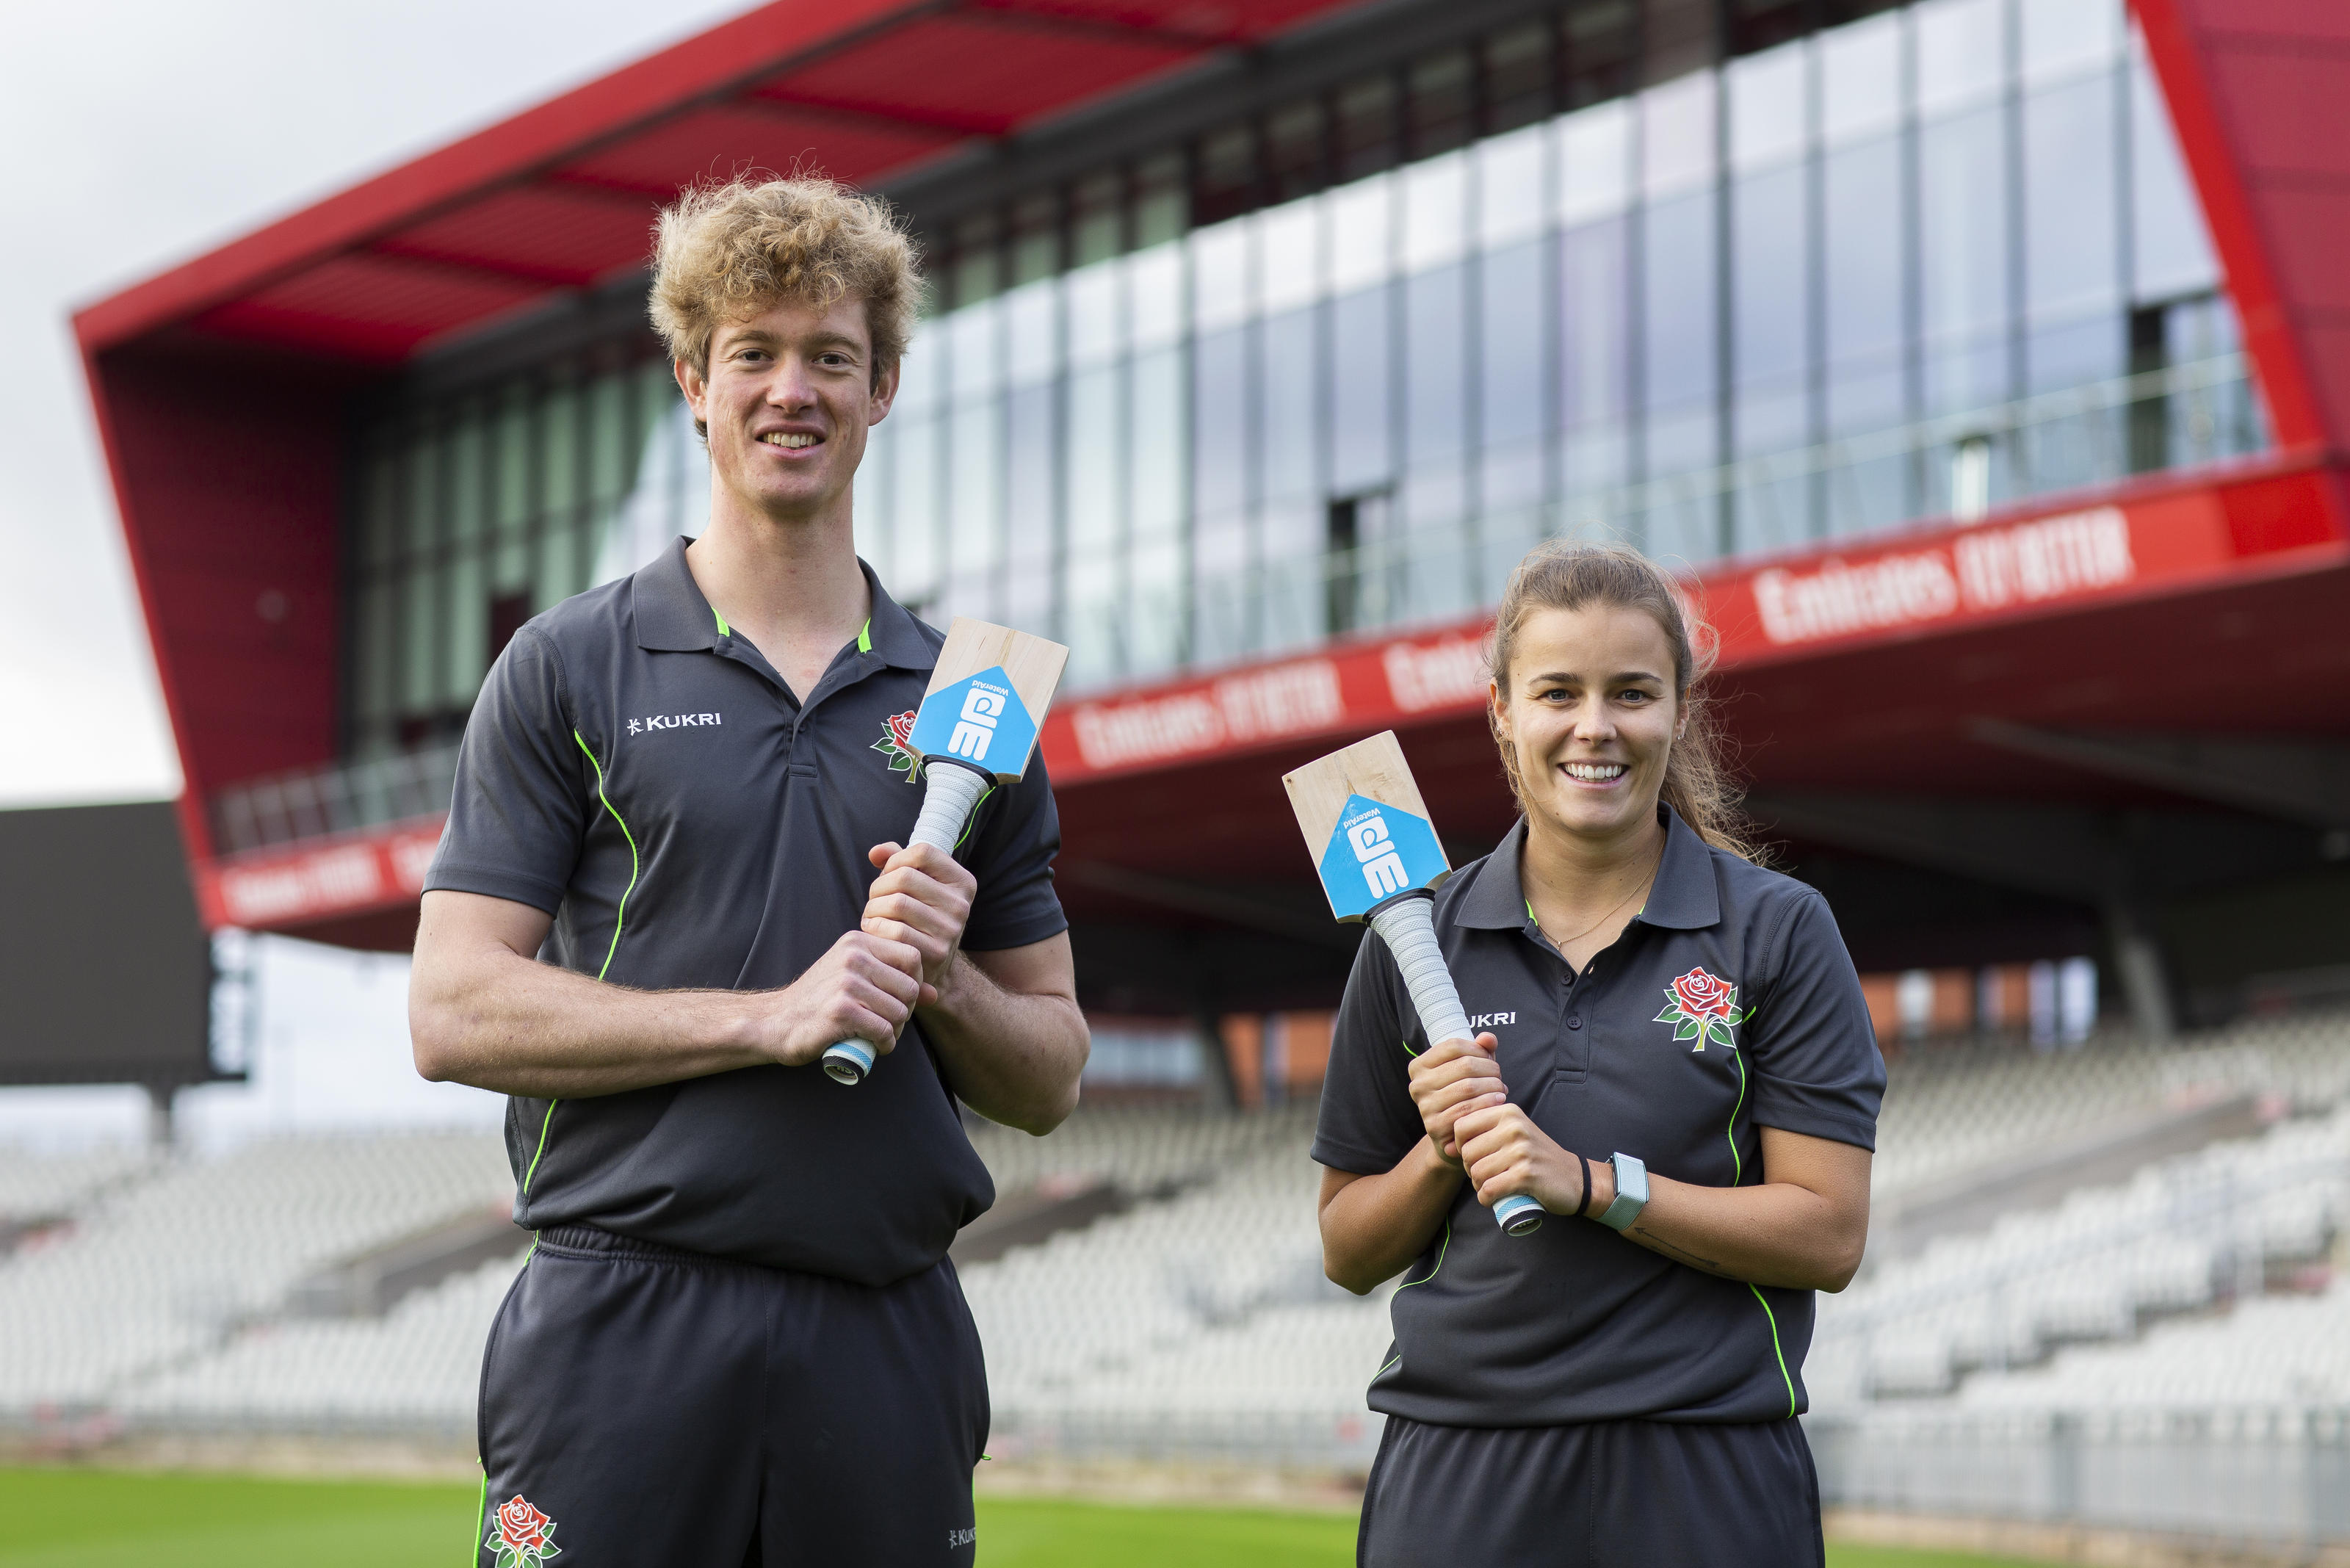 Cricketers Alex Hartley and Keaton Jennings with the bats for WaterAid's Bring Water appeal. Let's Bring Water cricket shoot at Lancashire Country Cricket club. November 2020